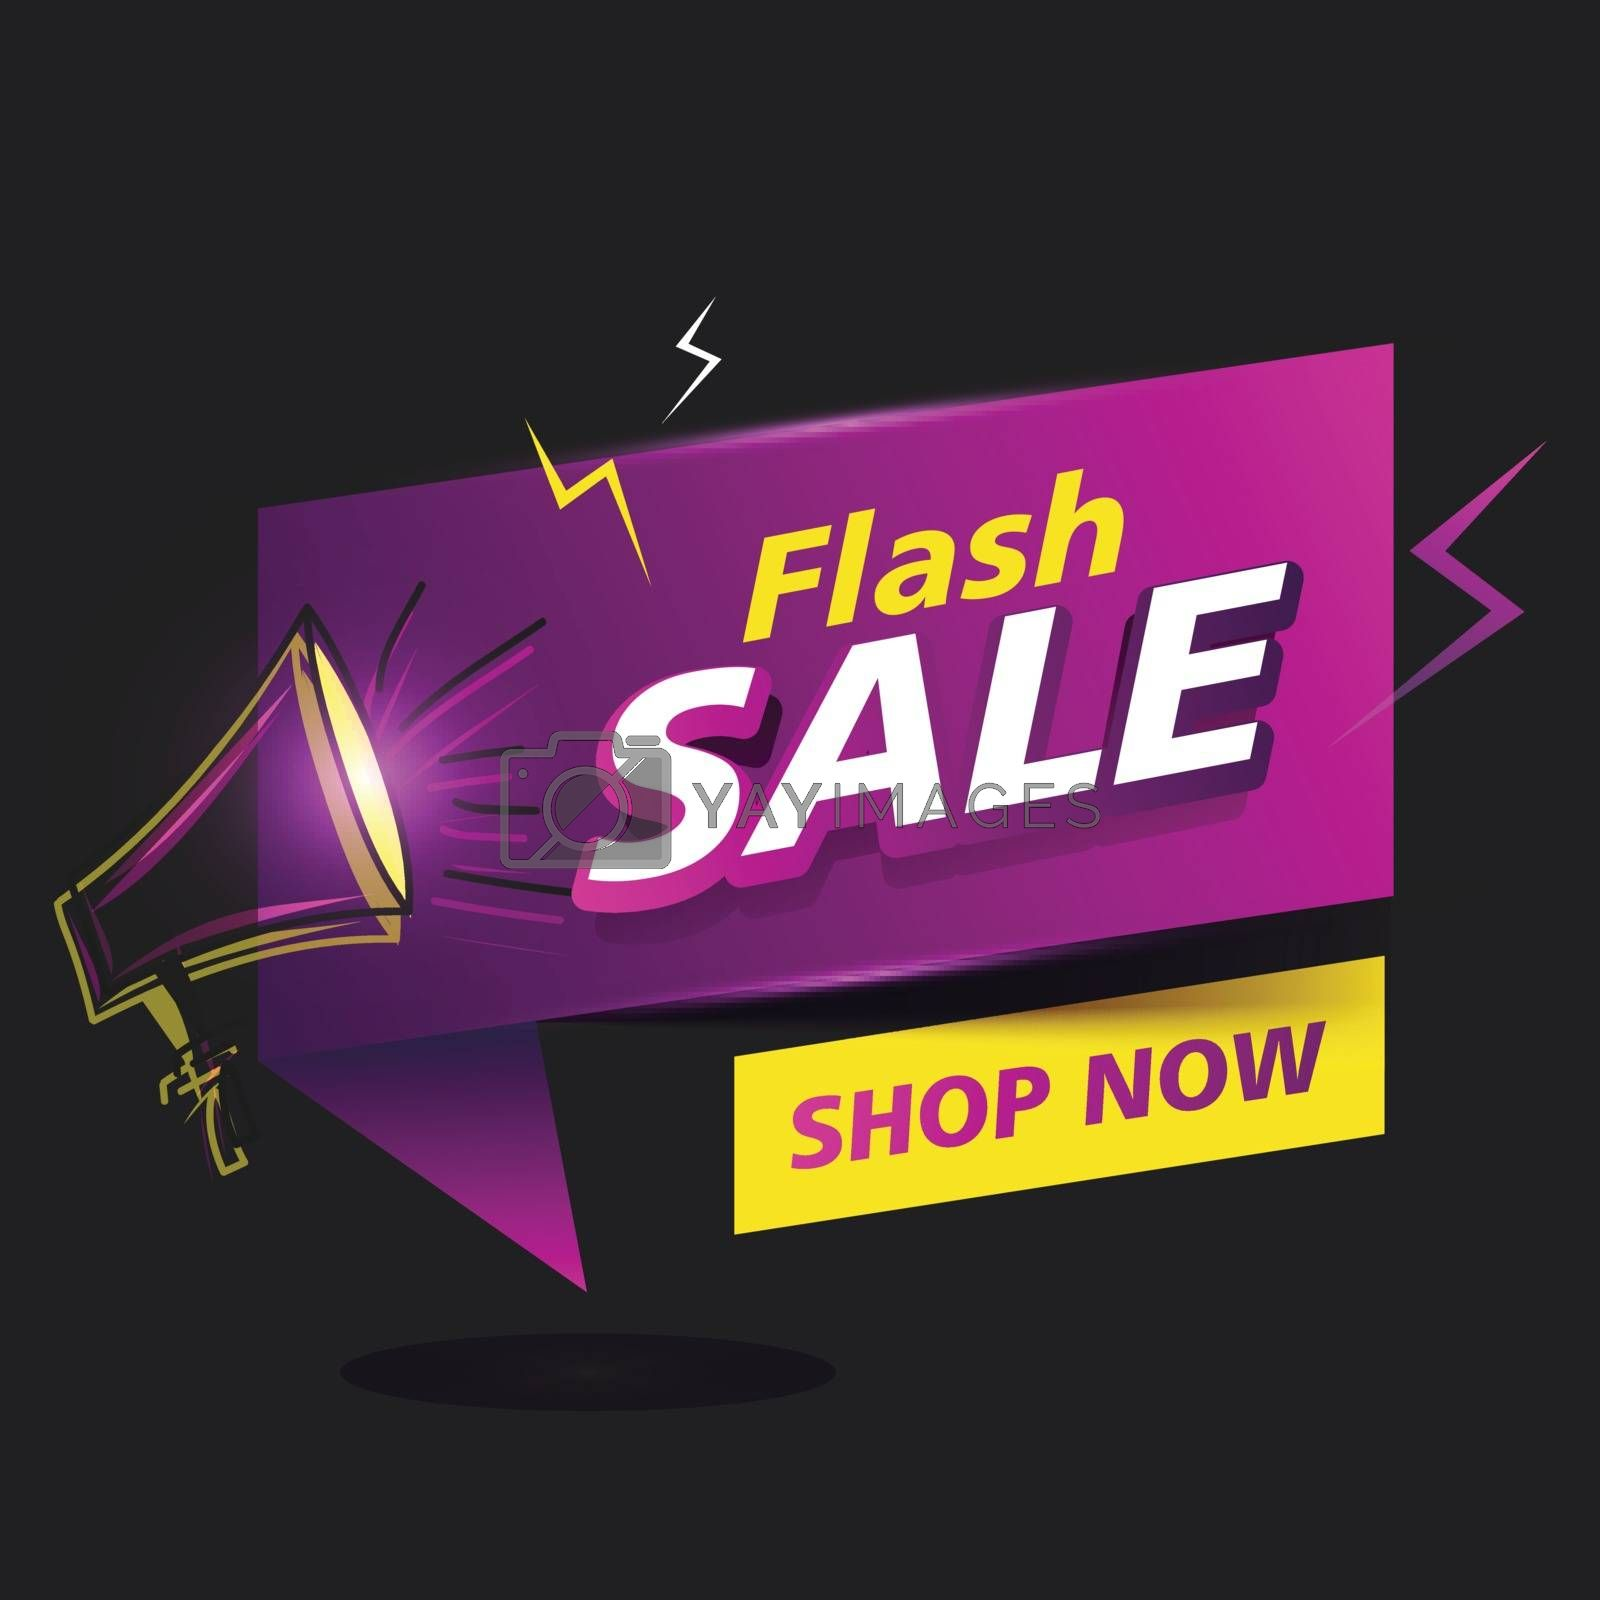 Royalty free image of Advertising glossy Flash Sale poster or banner design with black by aispl